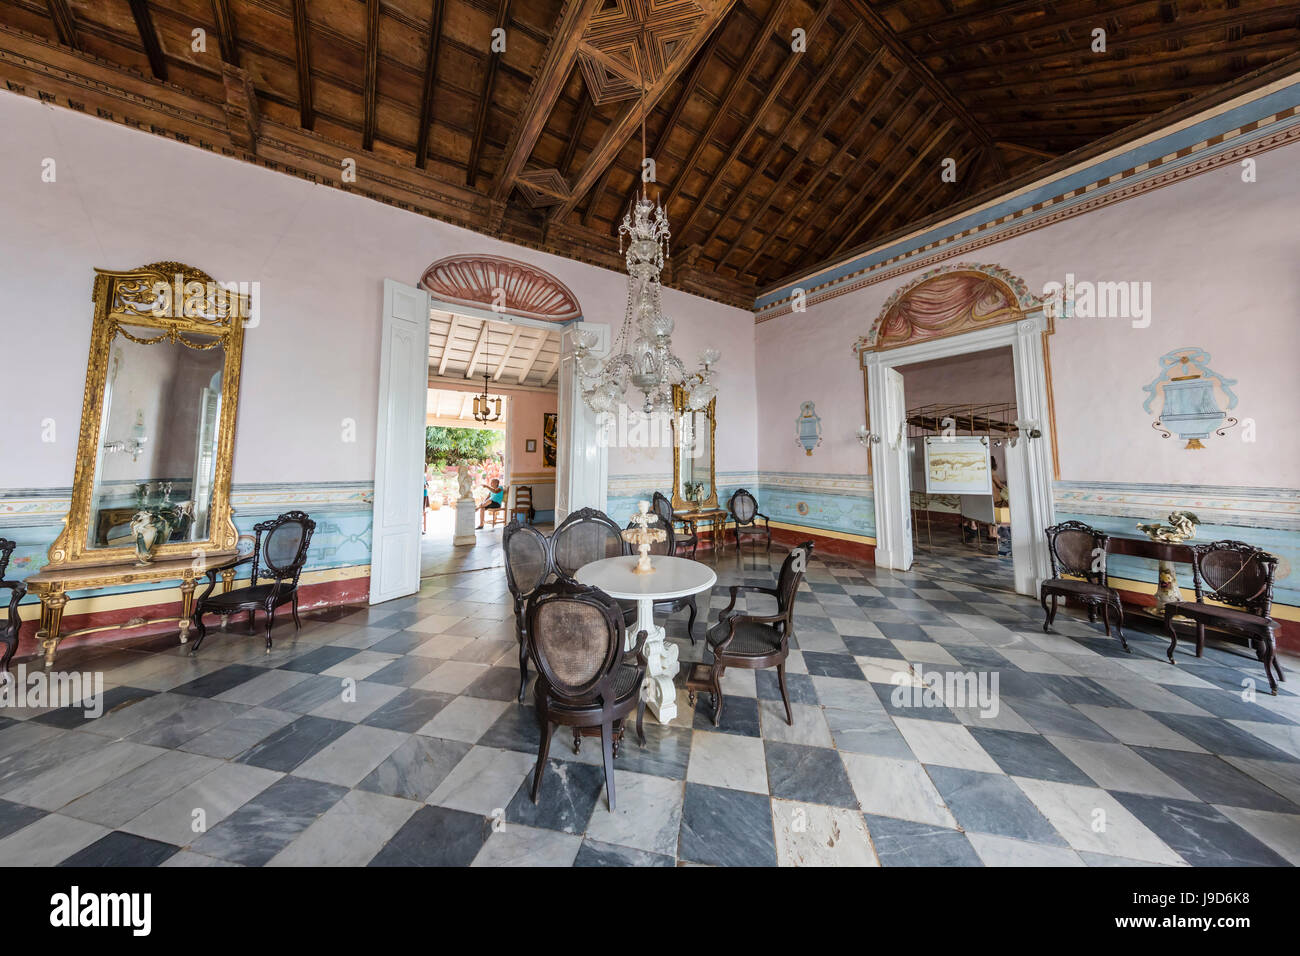 Interior view of the Museo de Arquitectura Colonial in the town of Trinidad UNESCO & Colonial Interior Colonial Interiors Stock Photos \u0026 Colonial ...